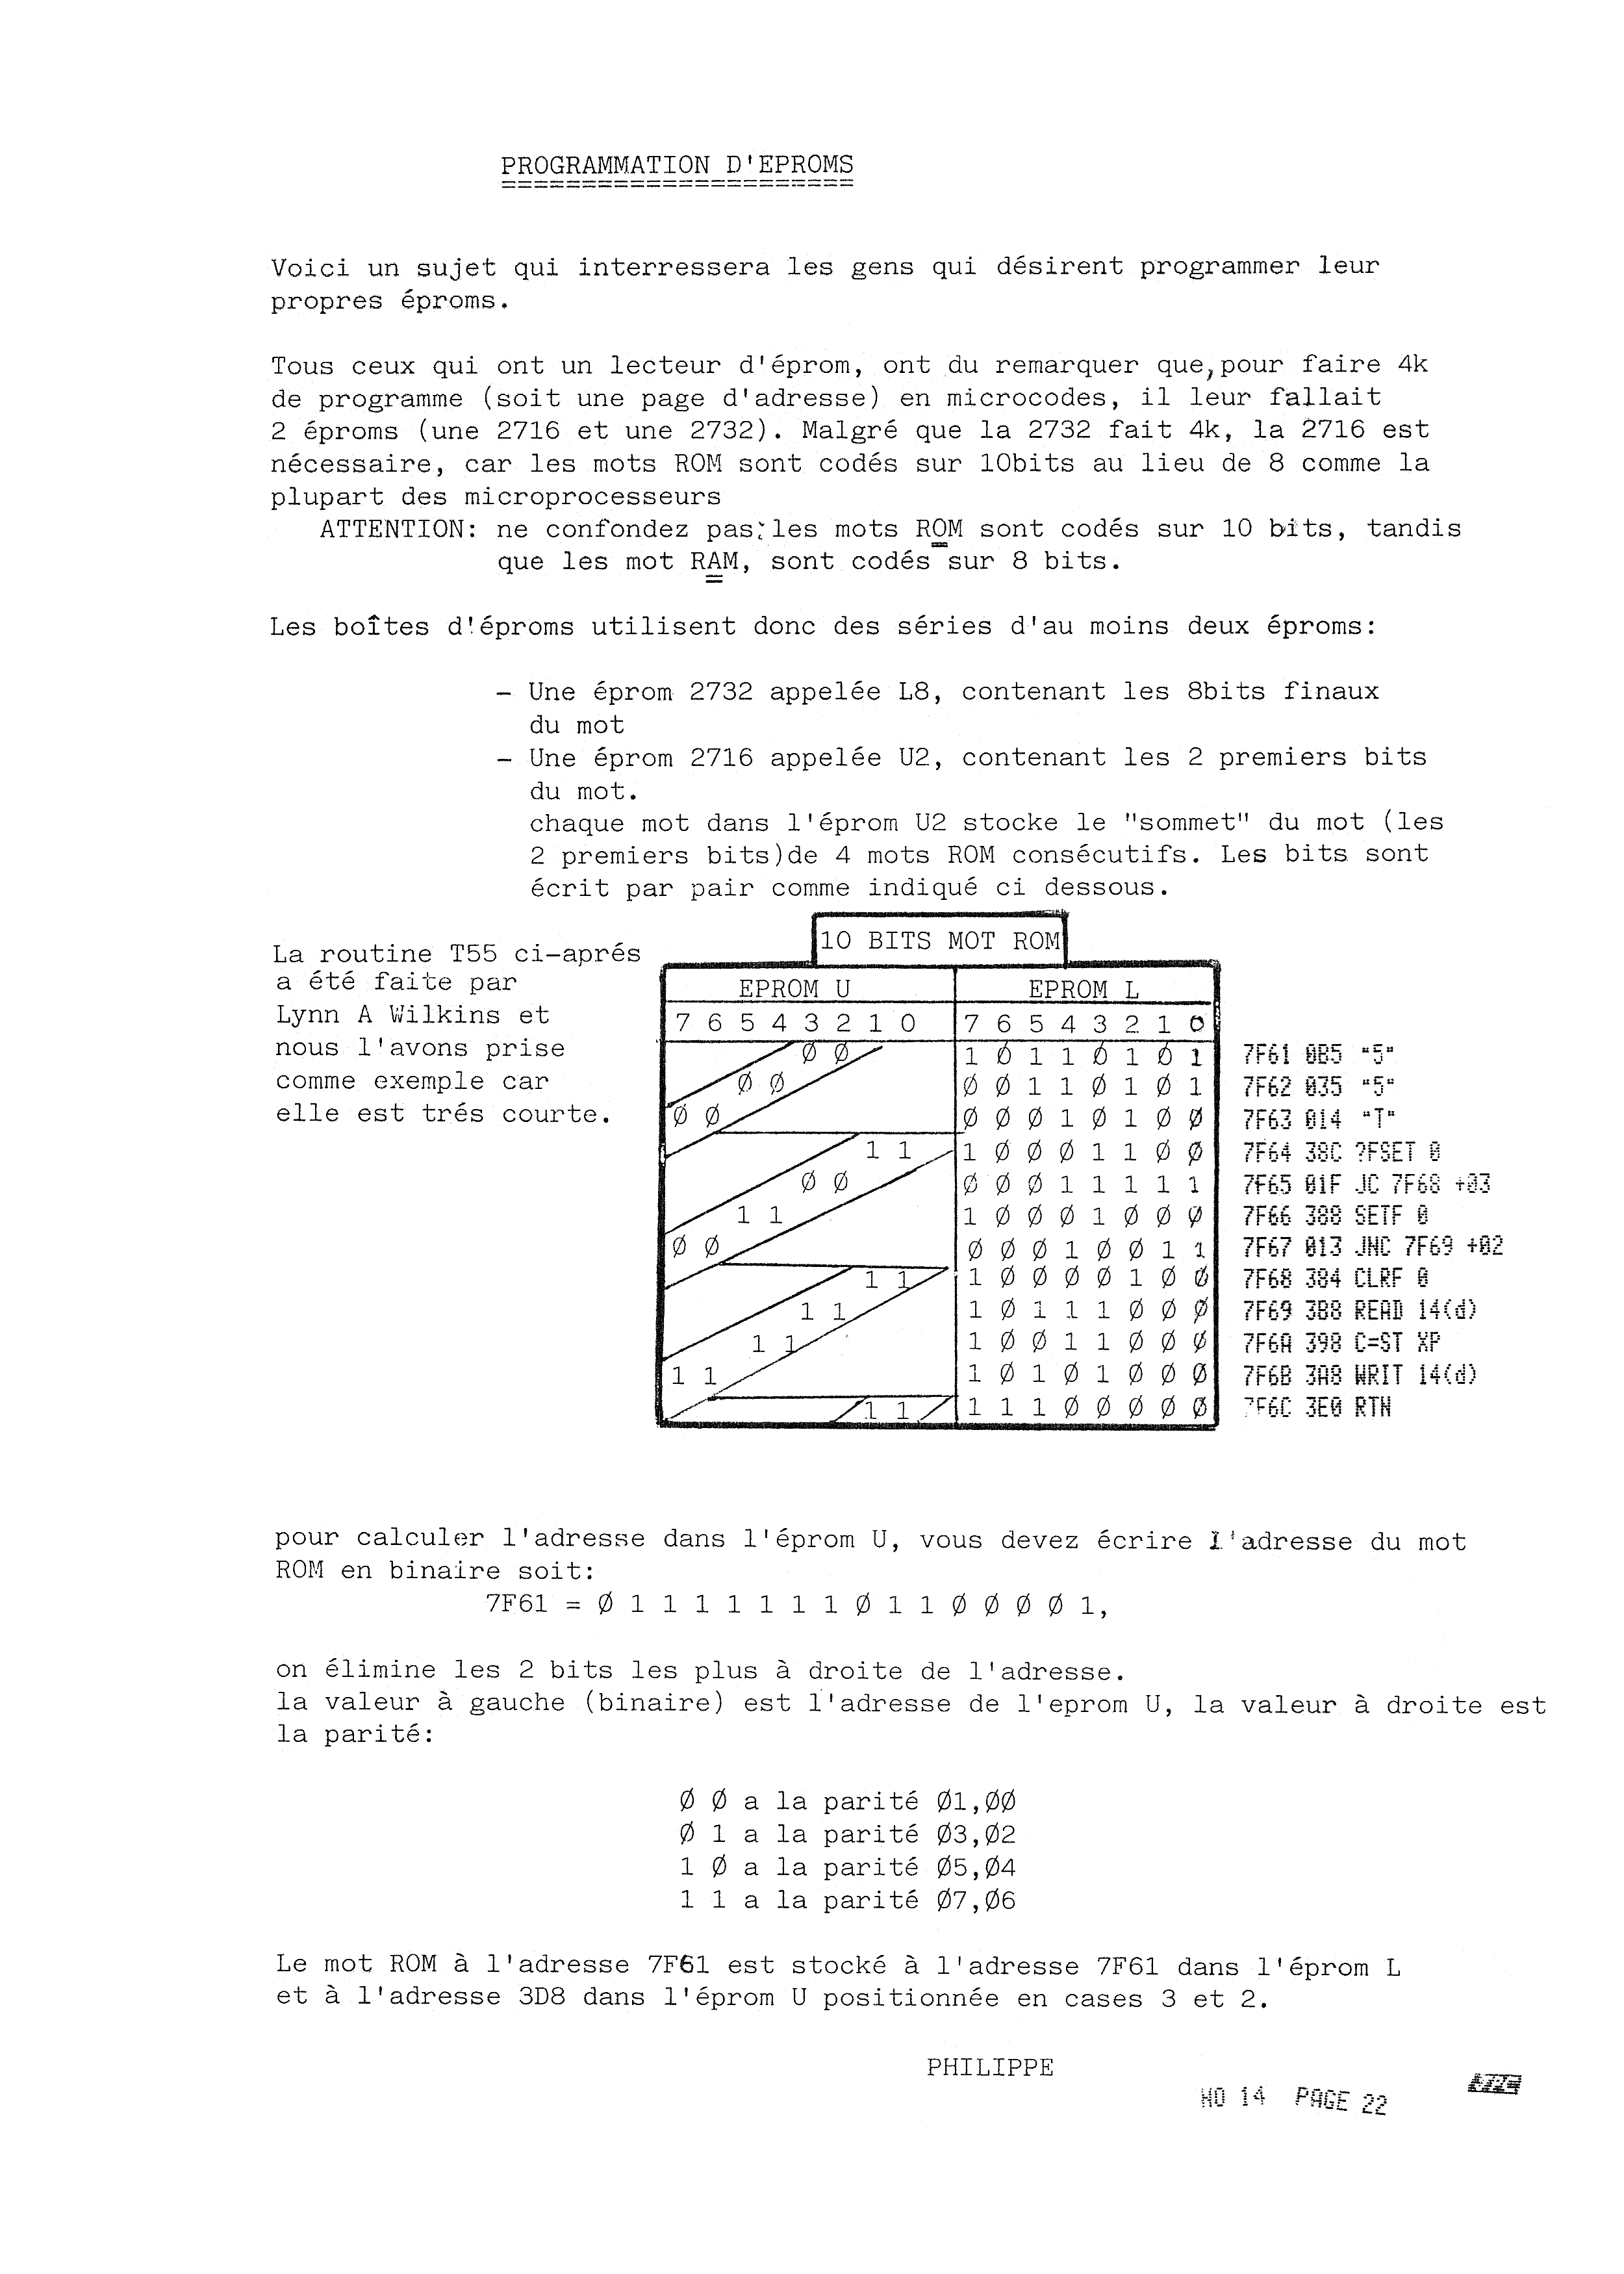 Jp-14-page-26-1000